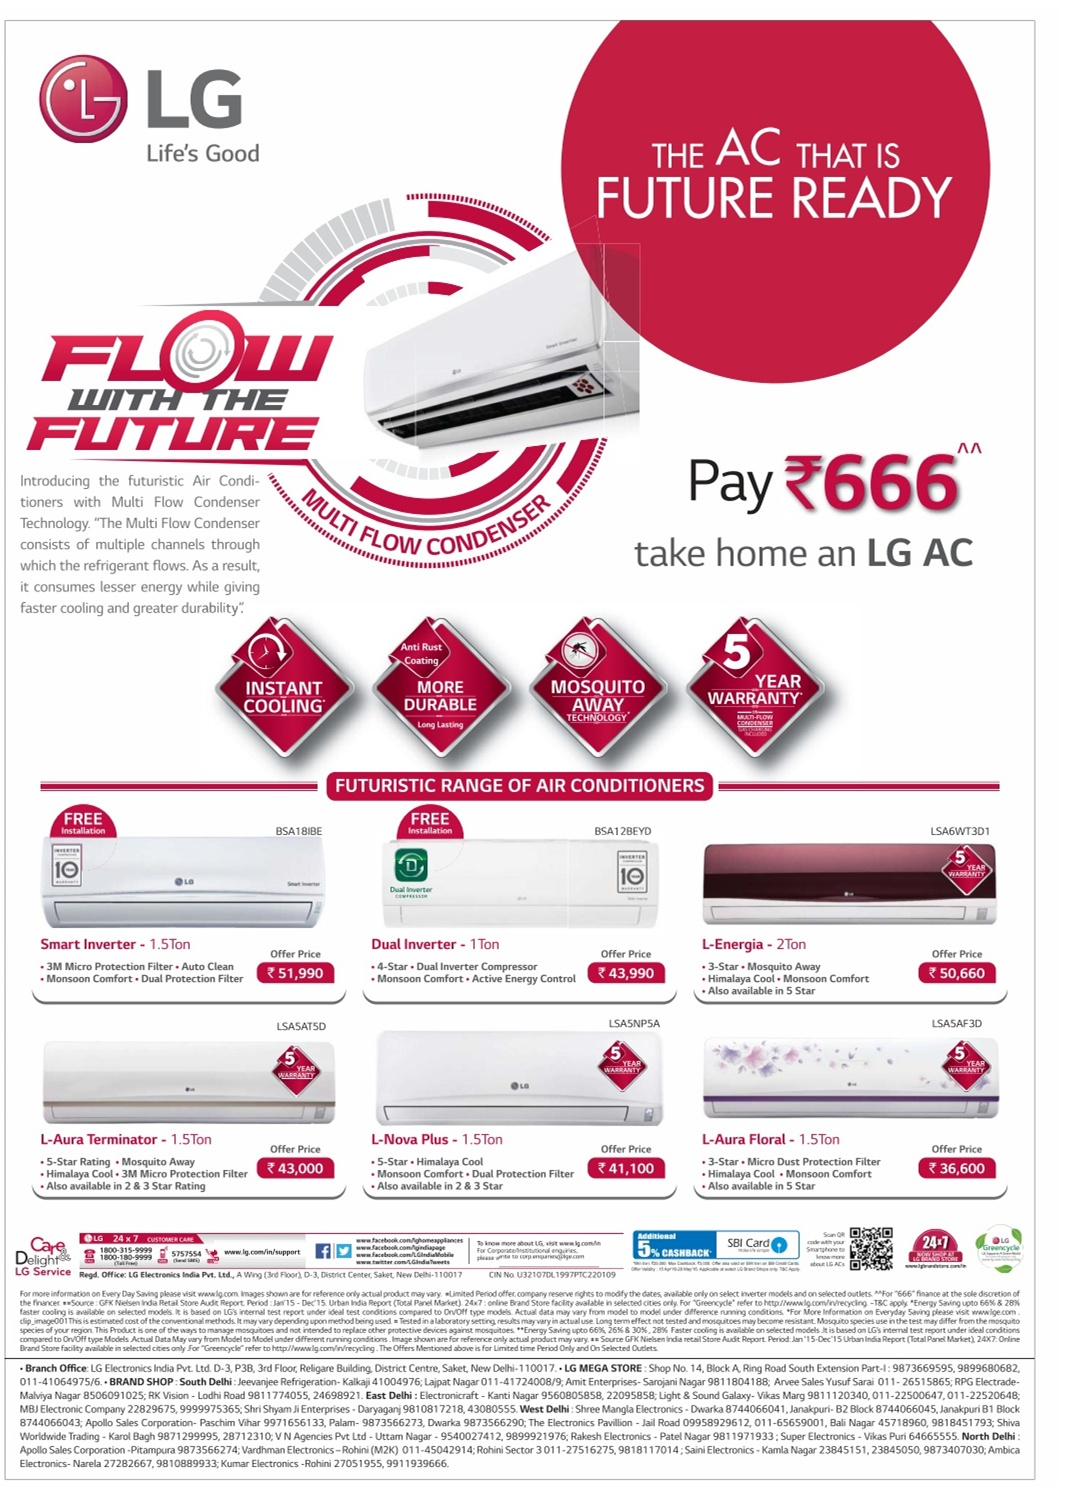 Just pay Rs 666 and take home an LG AC this summer   April 2016 discount offer on Air conditioners